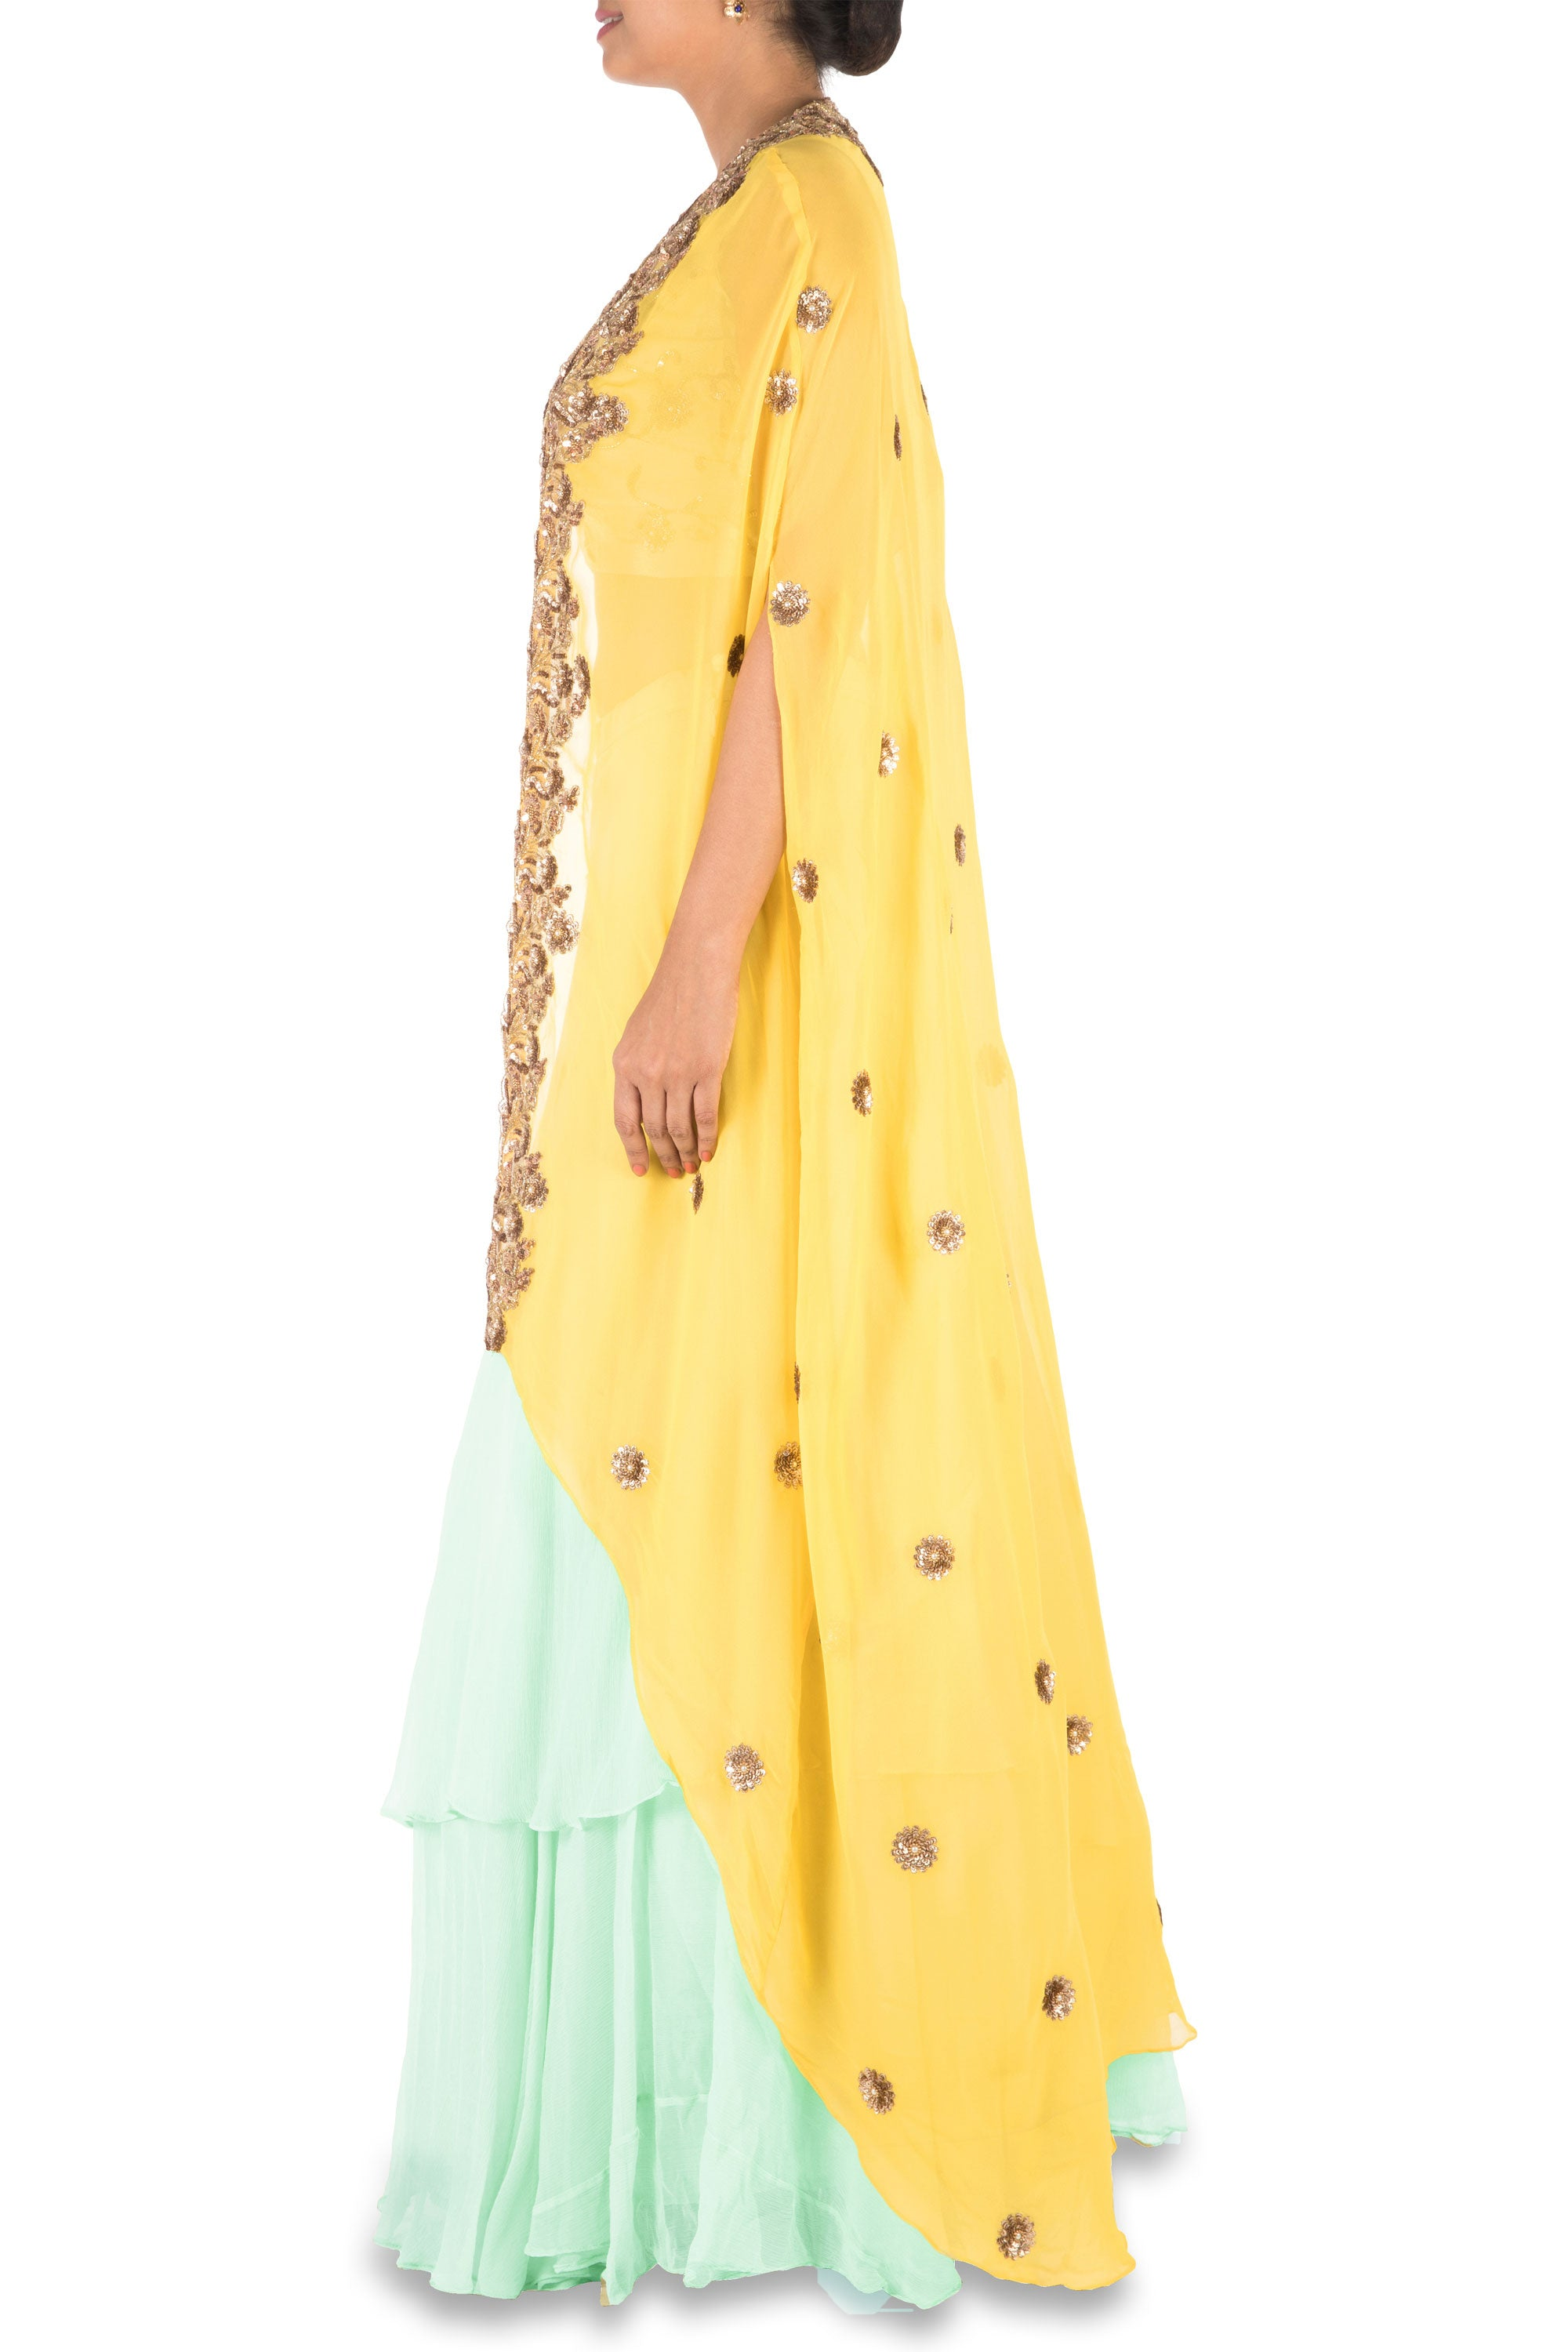 Hand Embroidered Sea Green And Mustard Yellow Kaftan Jacket Lehenga Set Side